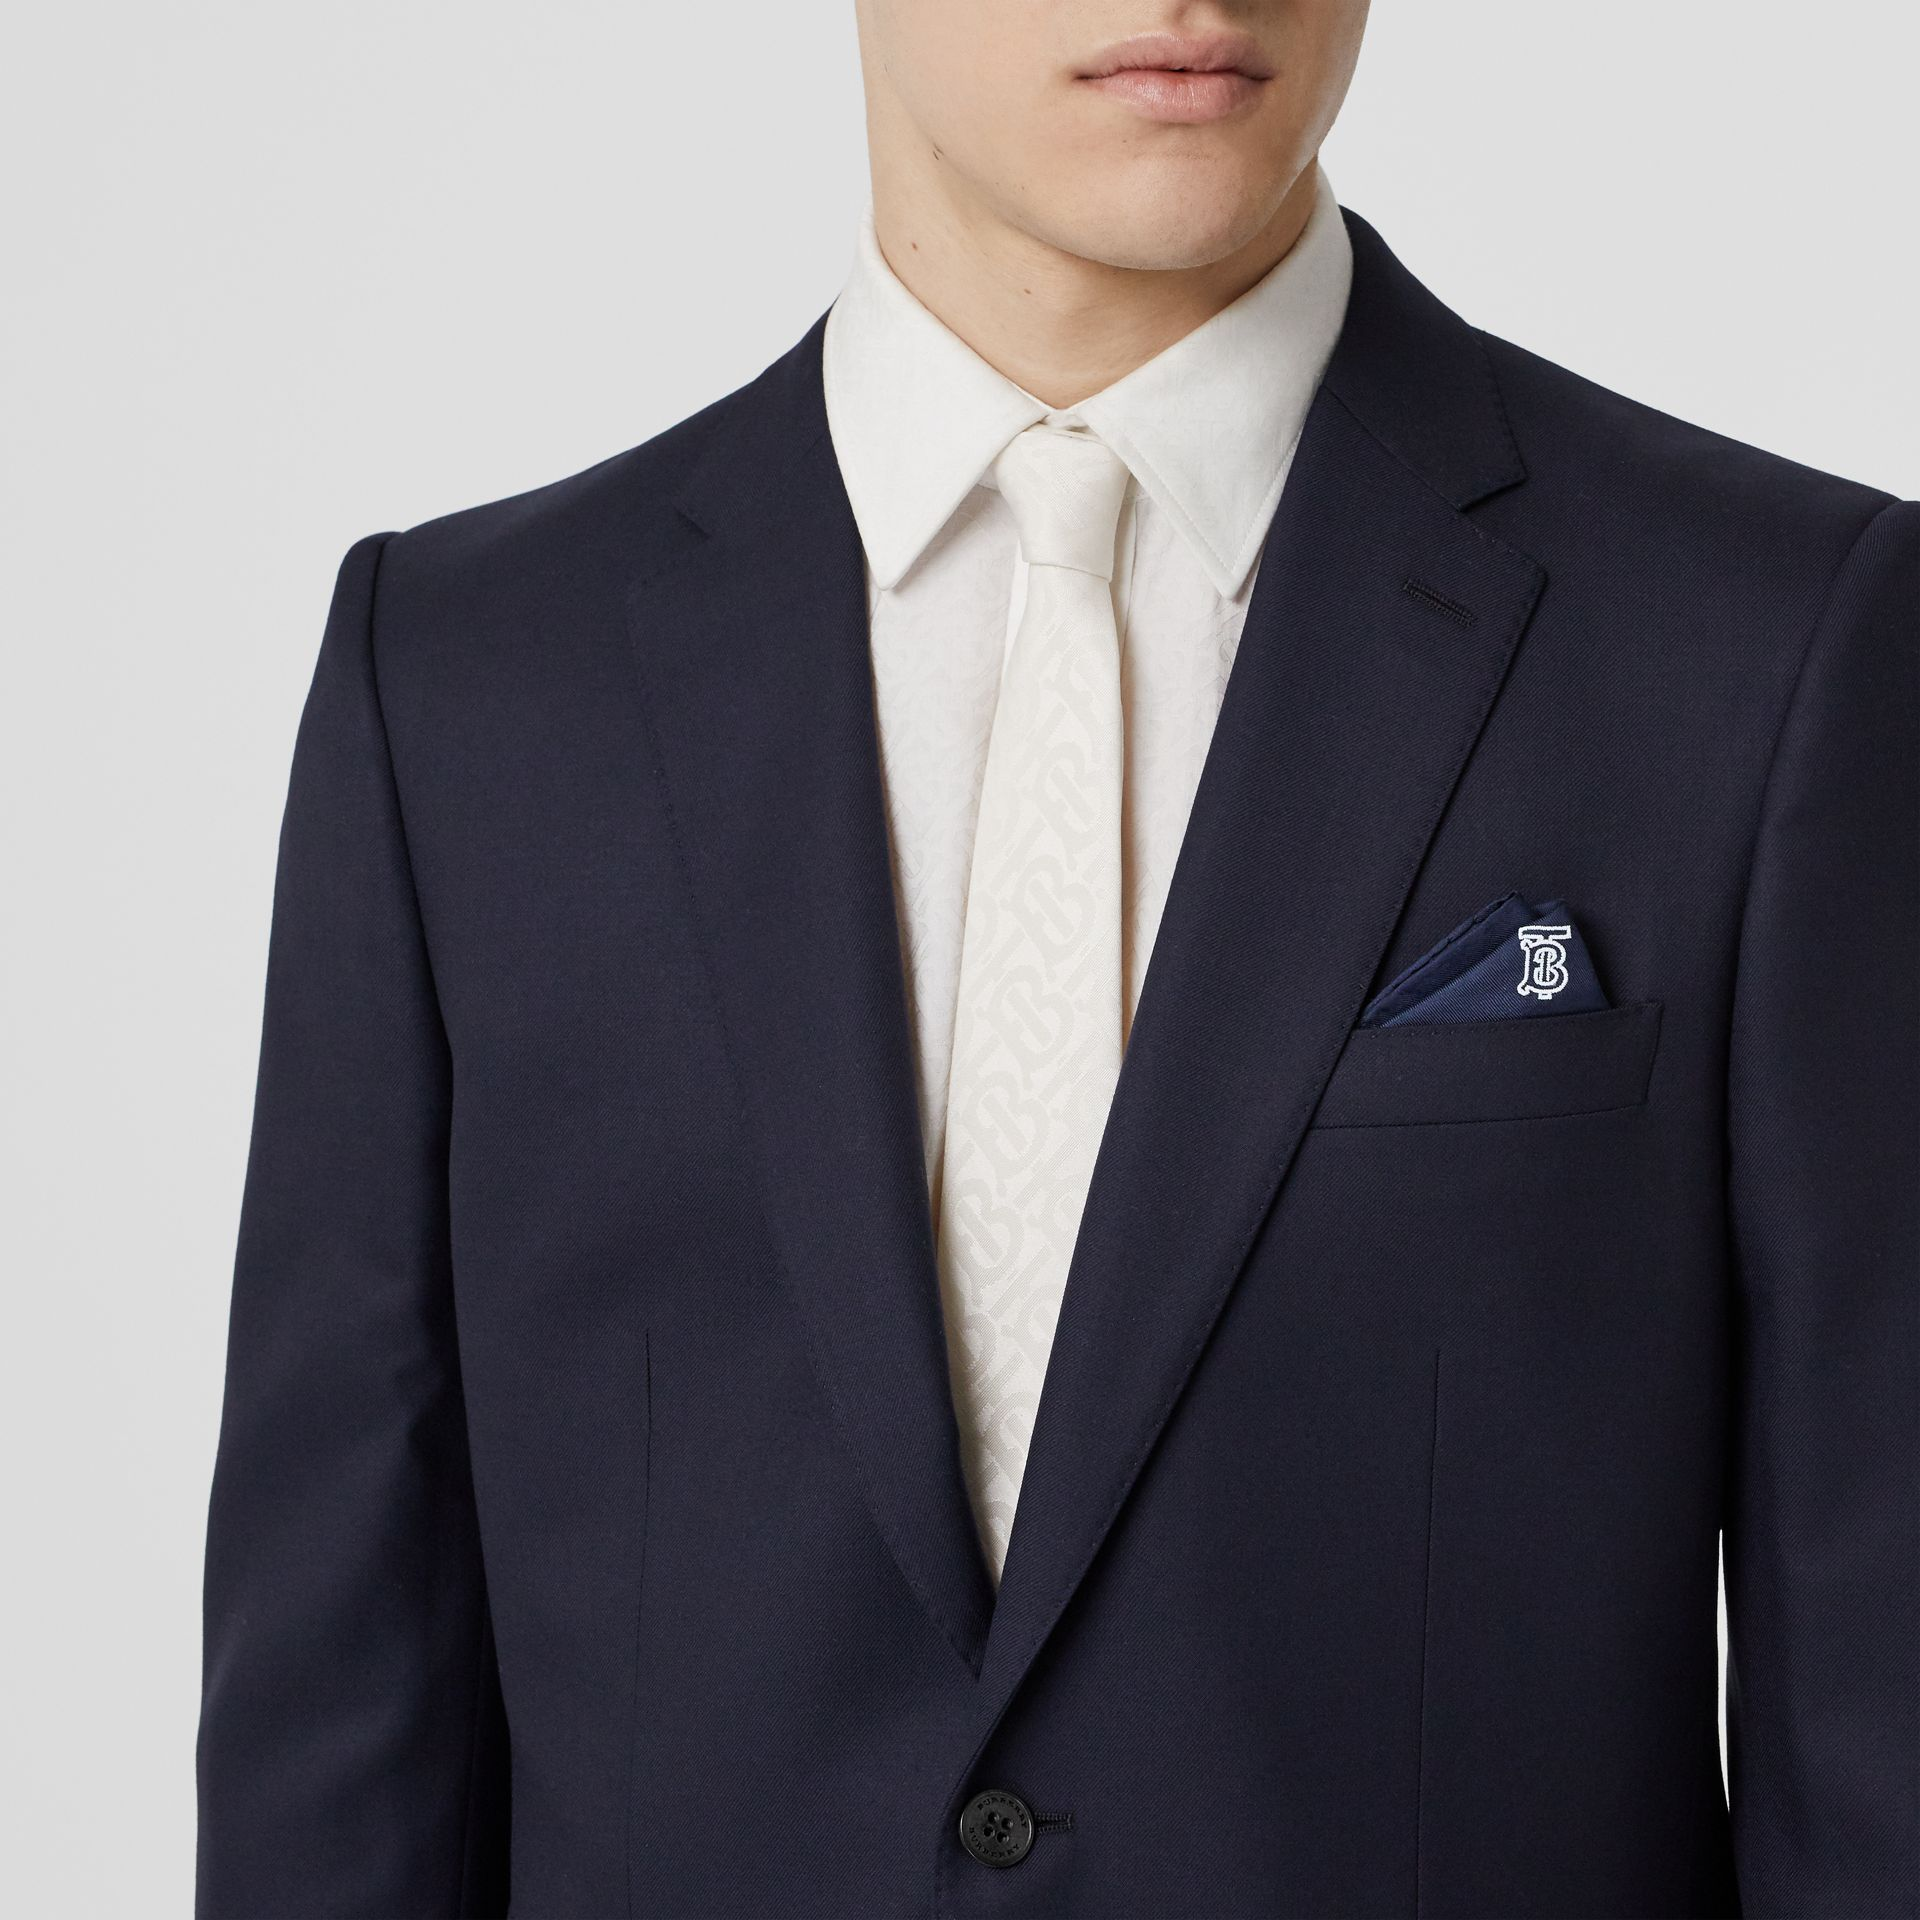 Monogram Motif Silk Pocket Square in Navy Blue - Men | Burberry - gallery image 2